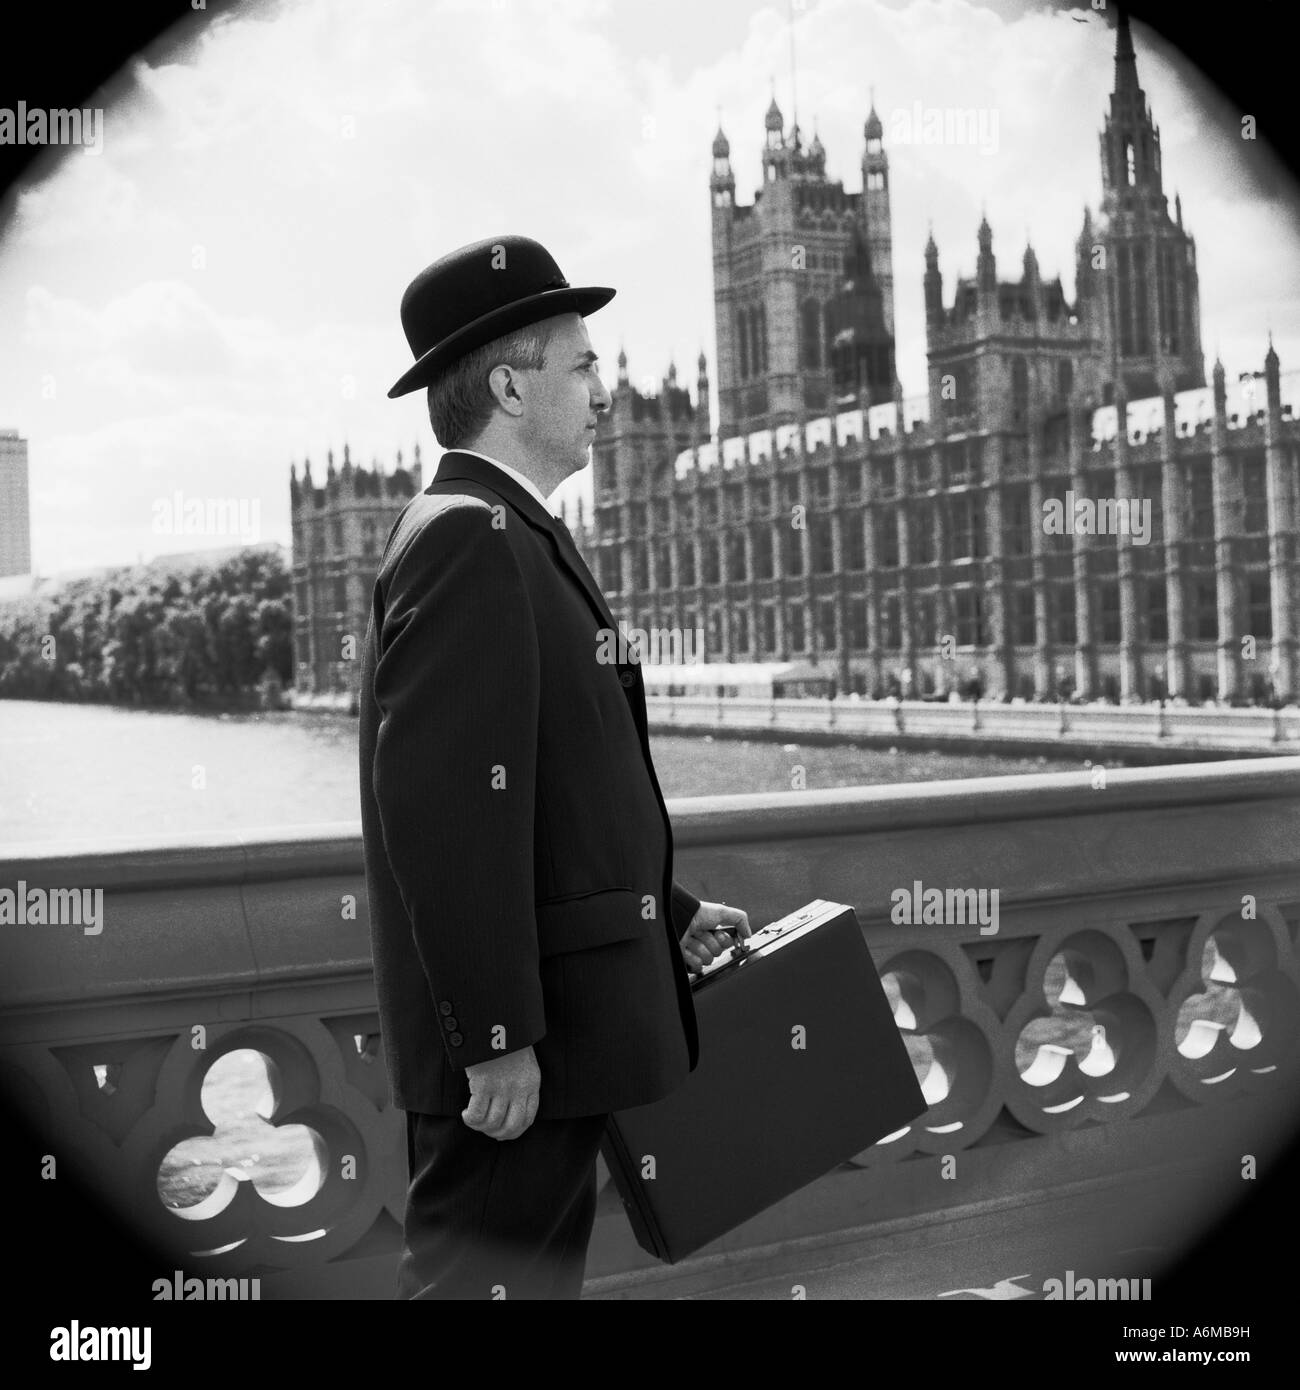 Englishman In Bowler Hat On Westminster Bridge With Houses